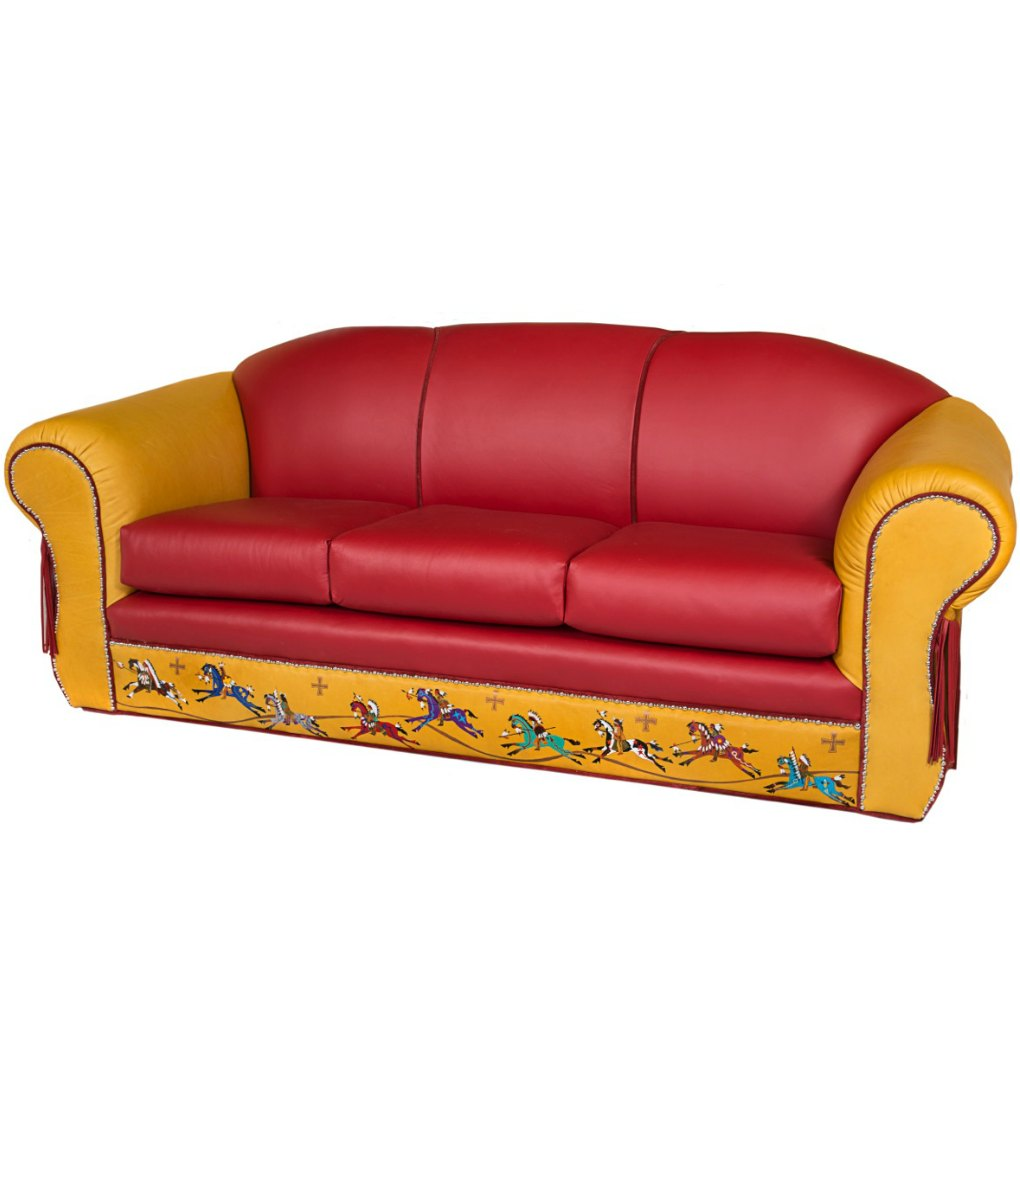 Western Leather Sofa With Indian Artwork